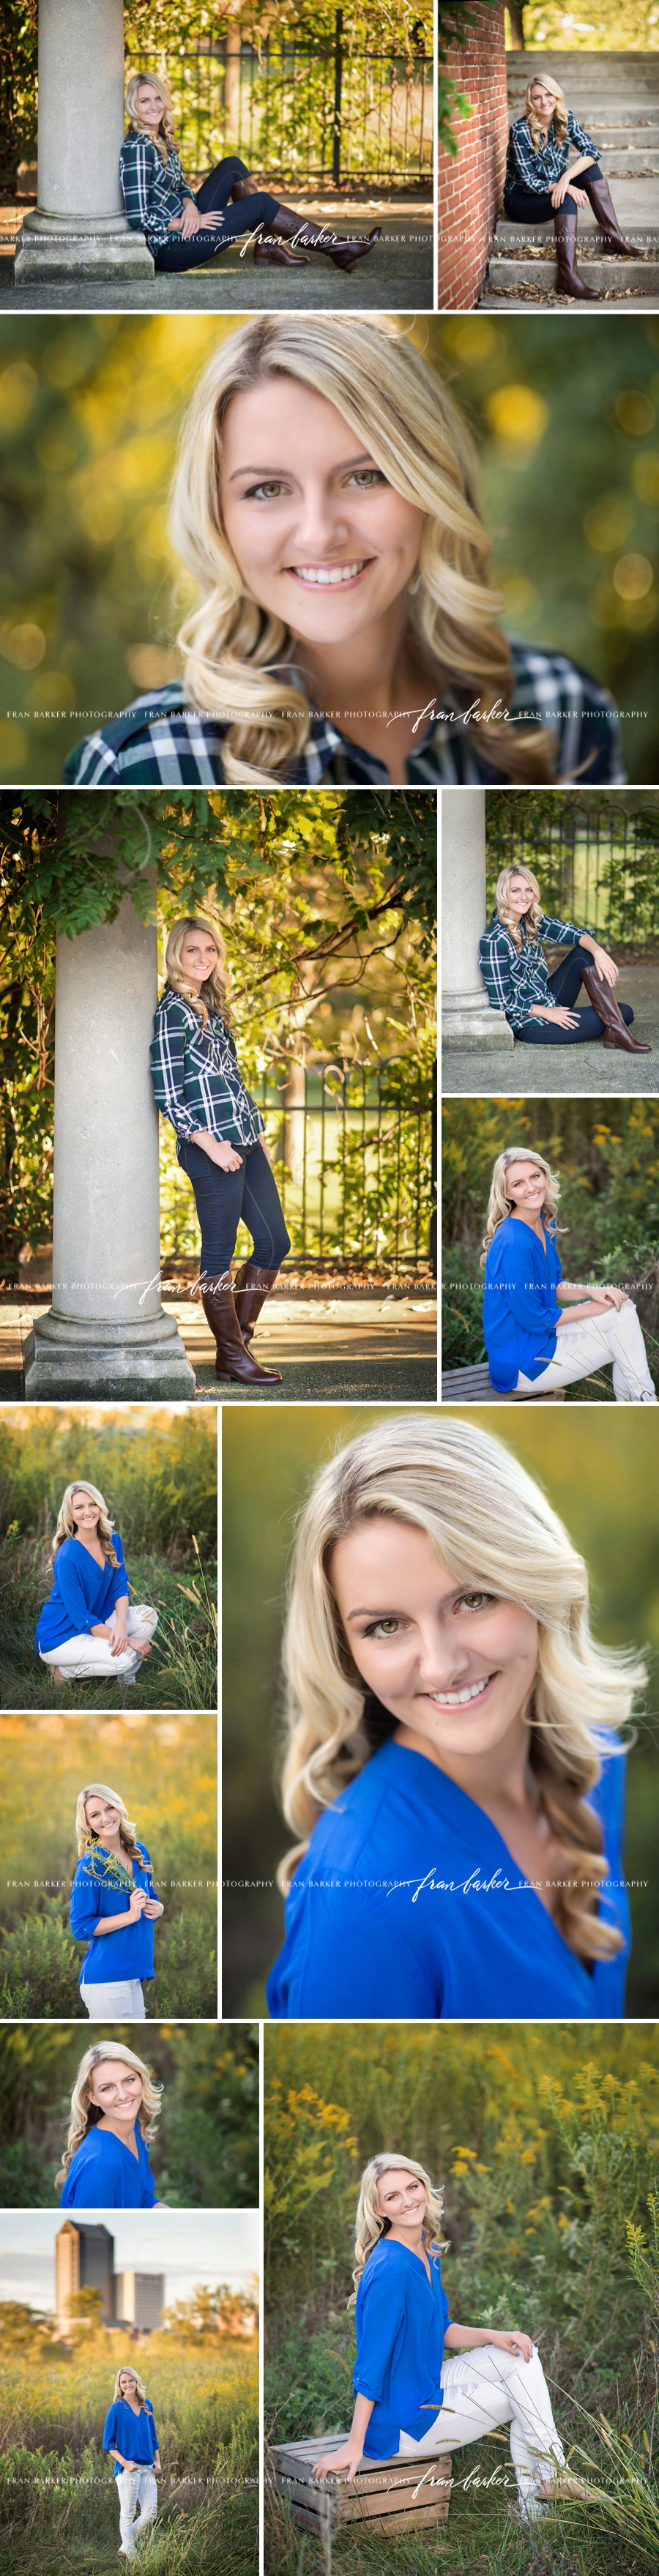 senior pictures dublin ohio